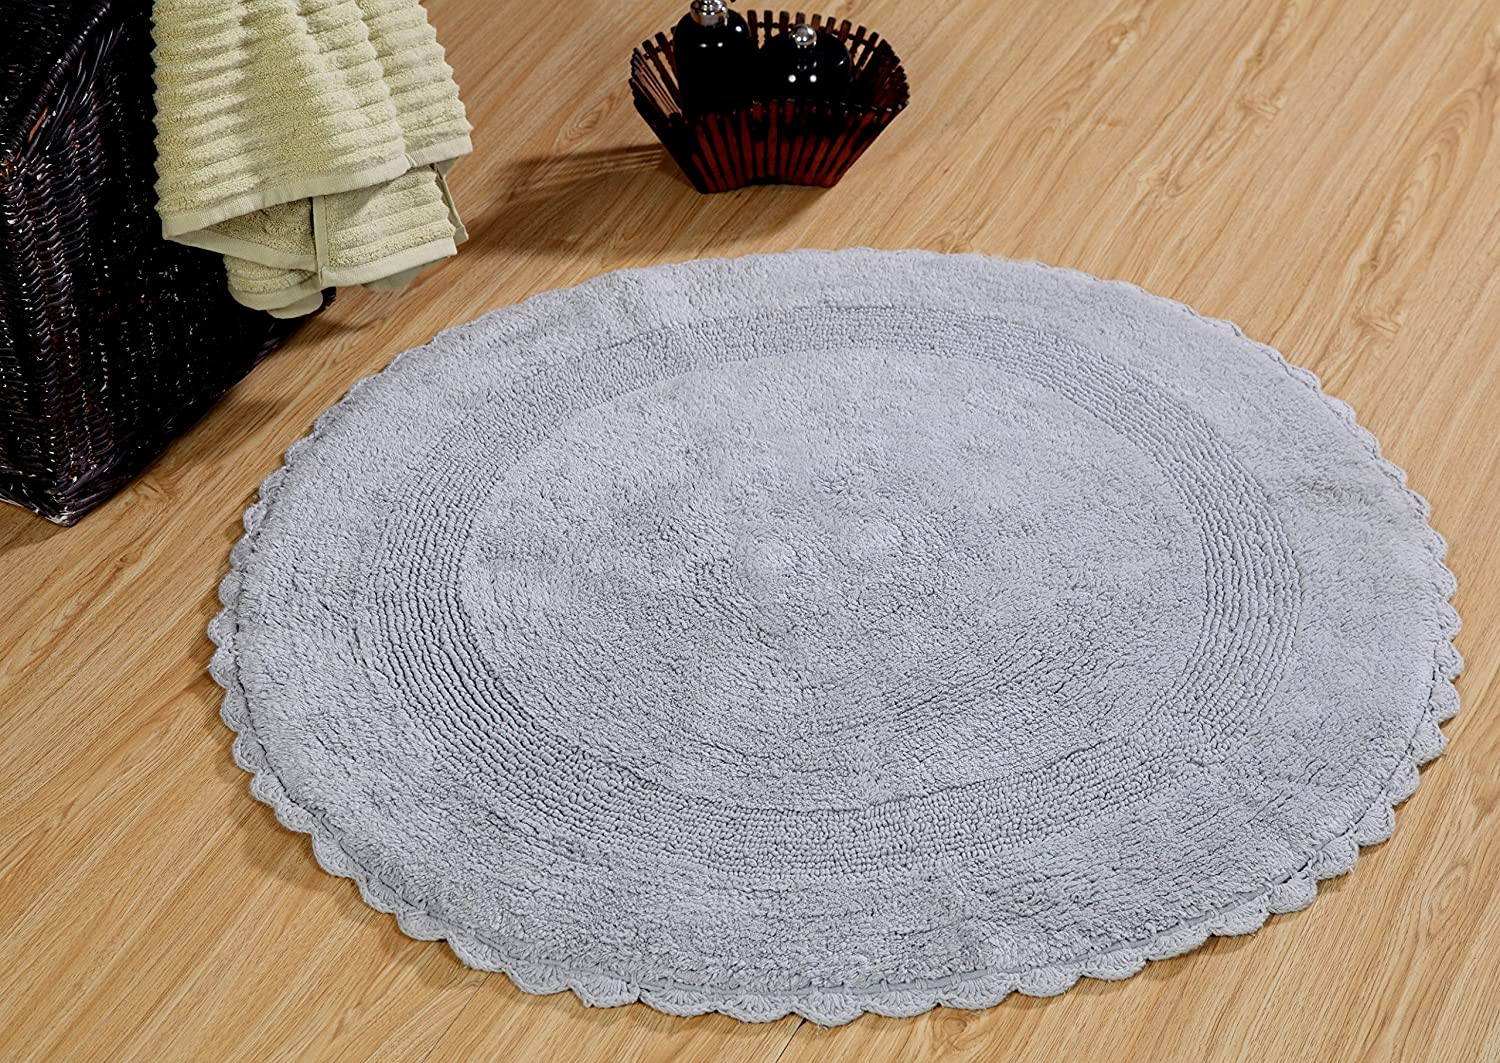 Saffron Fabs Bath Rug Cotton 36 In Round, Reversible-Different Pattern On Both Sides, Silver Gray, Hand Knitted Crochet Lace Border, Machine Washable